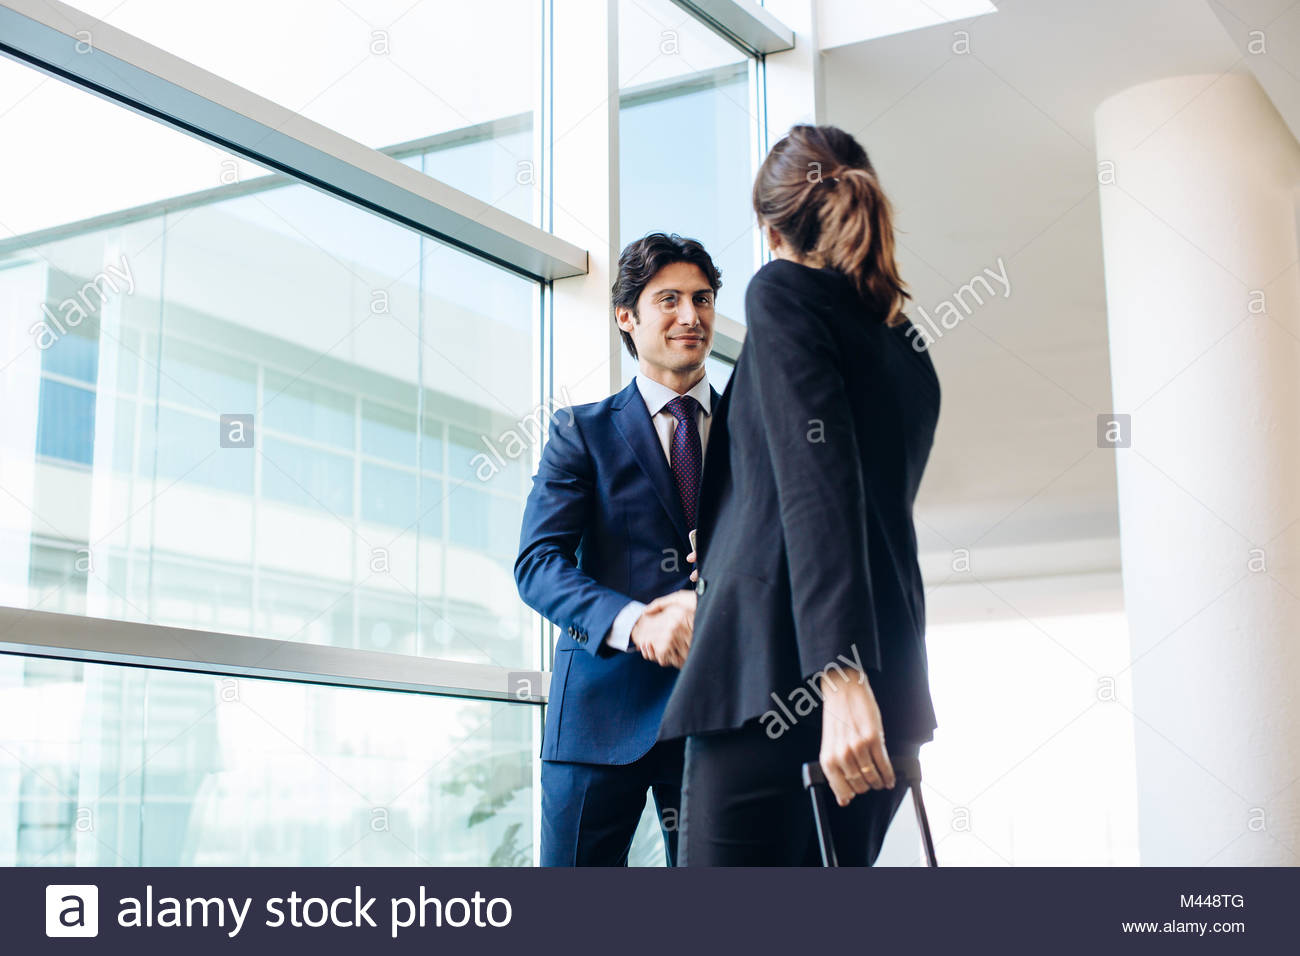 Businessman and businesswoman with wheeled luggage in hotel building - Stock Image